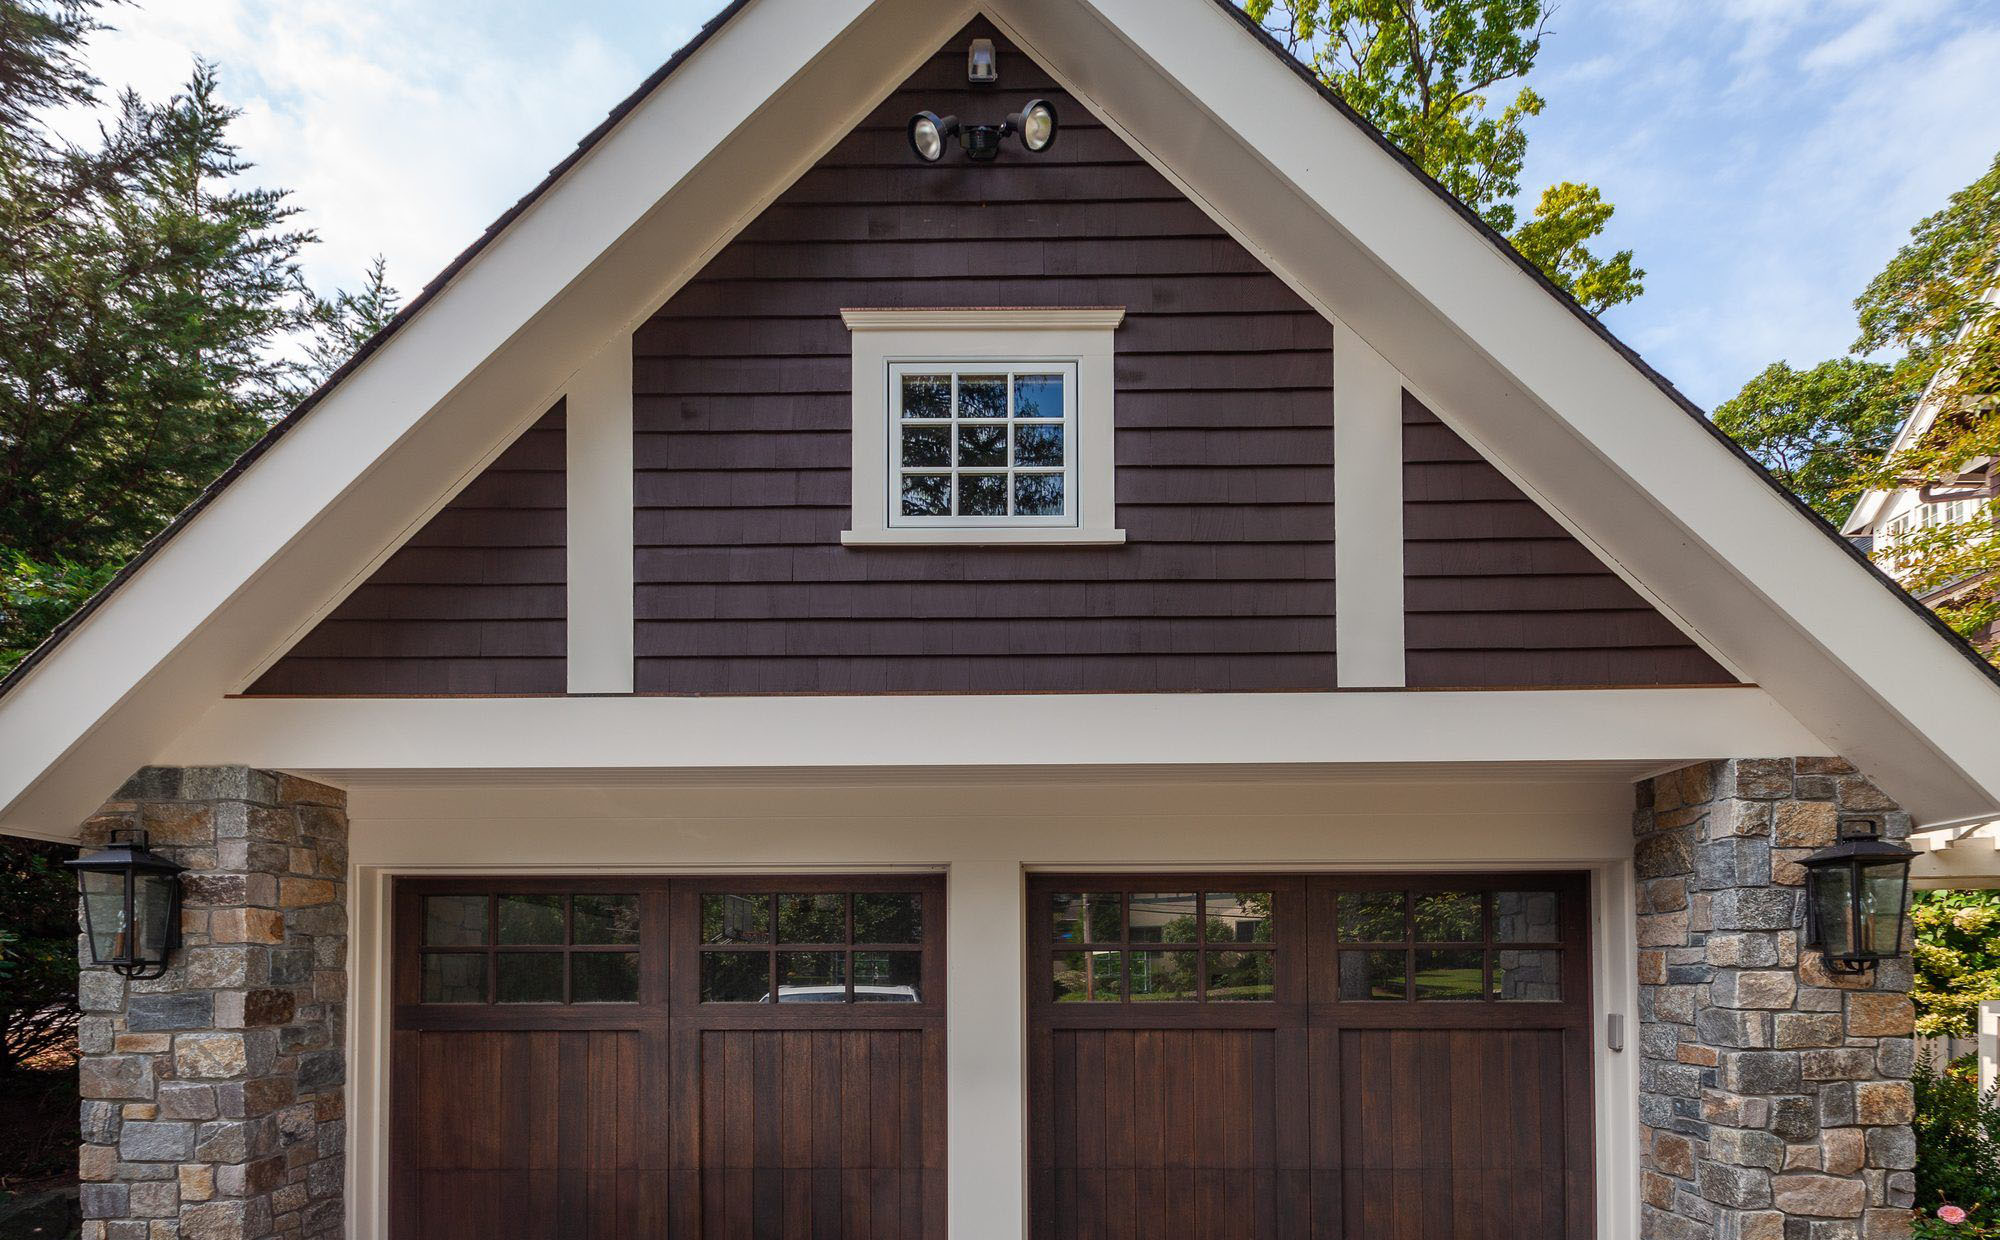 Real wood garage doors stained dark brown. Stone siding with stained wood cedar shake. buying garage doors.